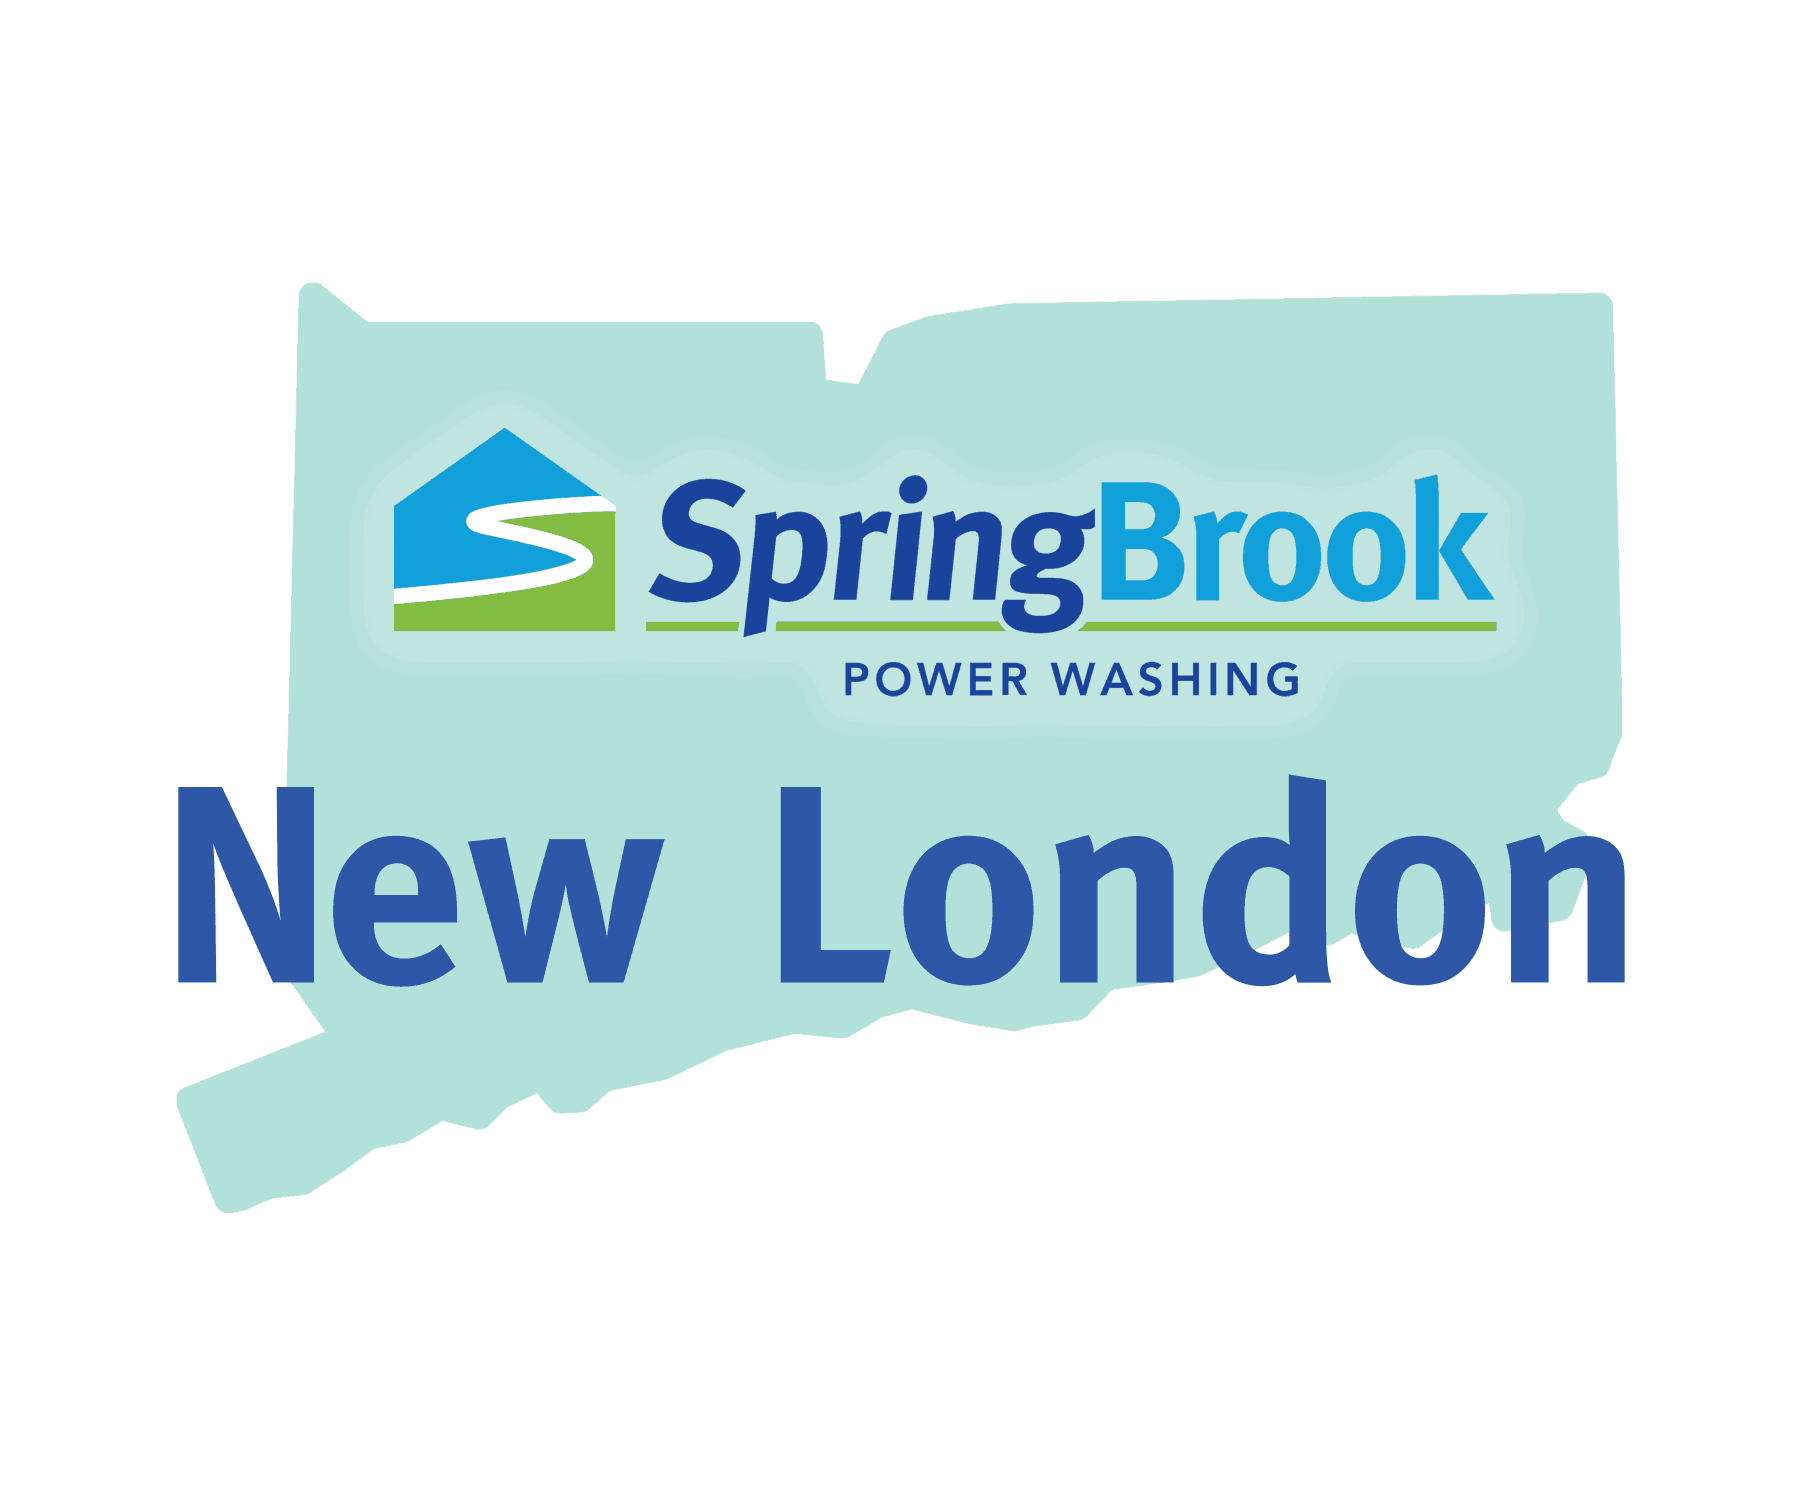 Springbrook Power Washing New London Connecticut